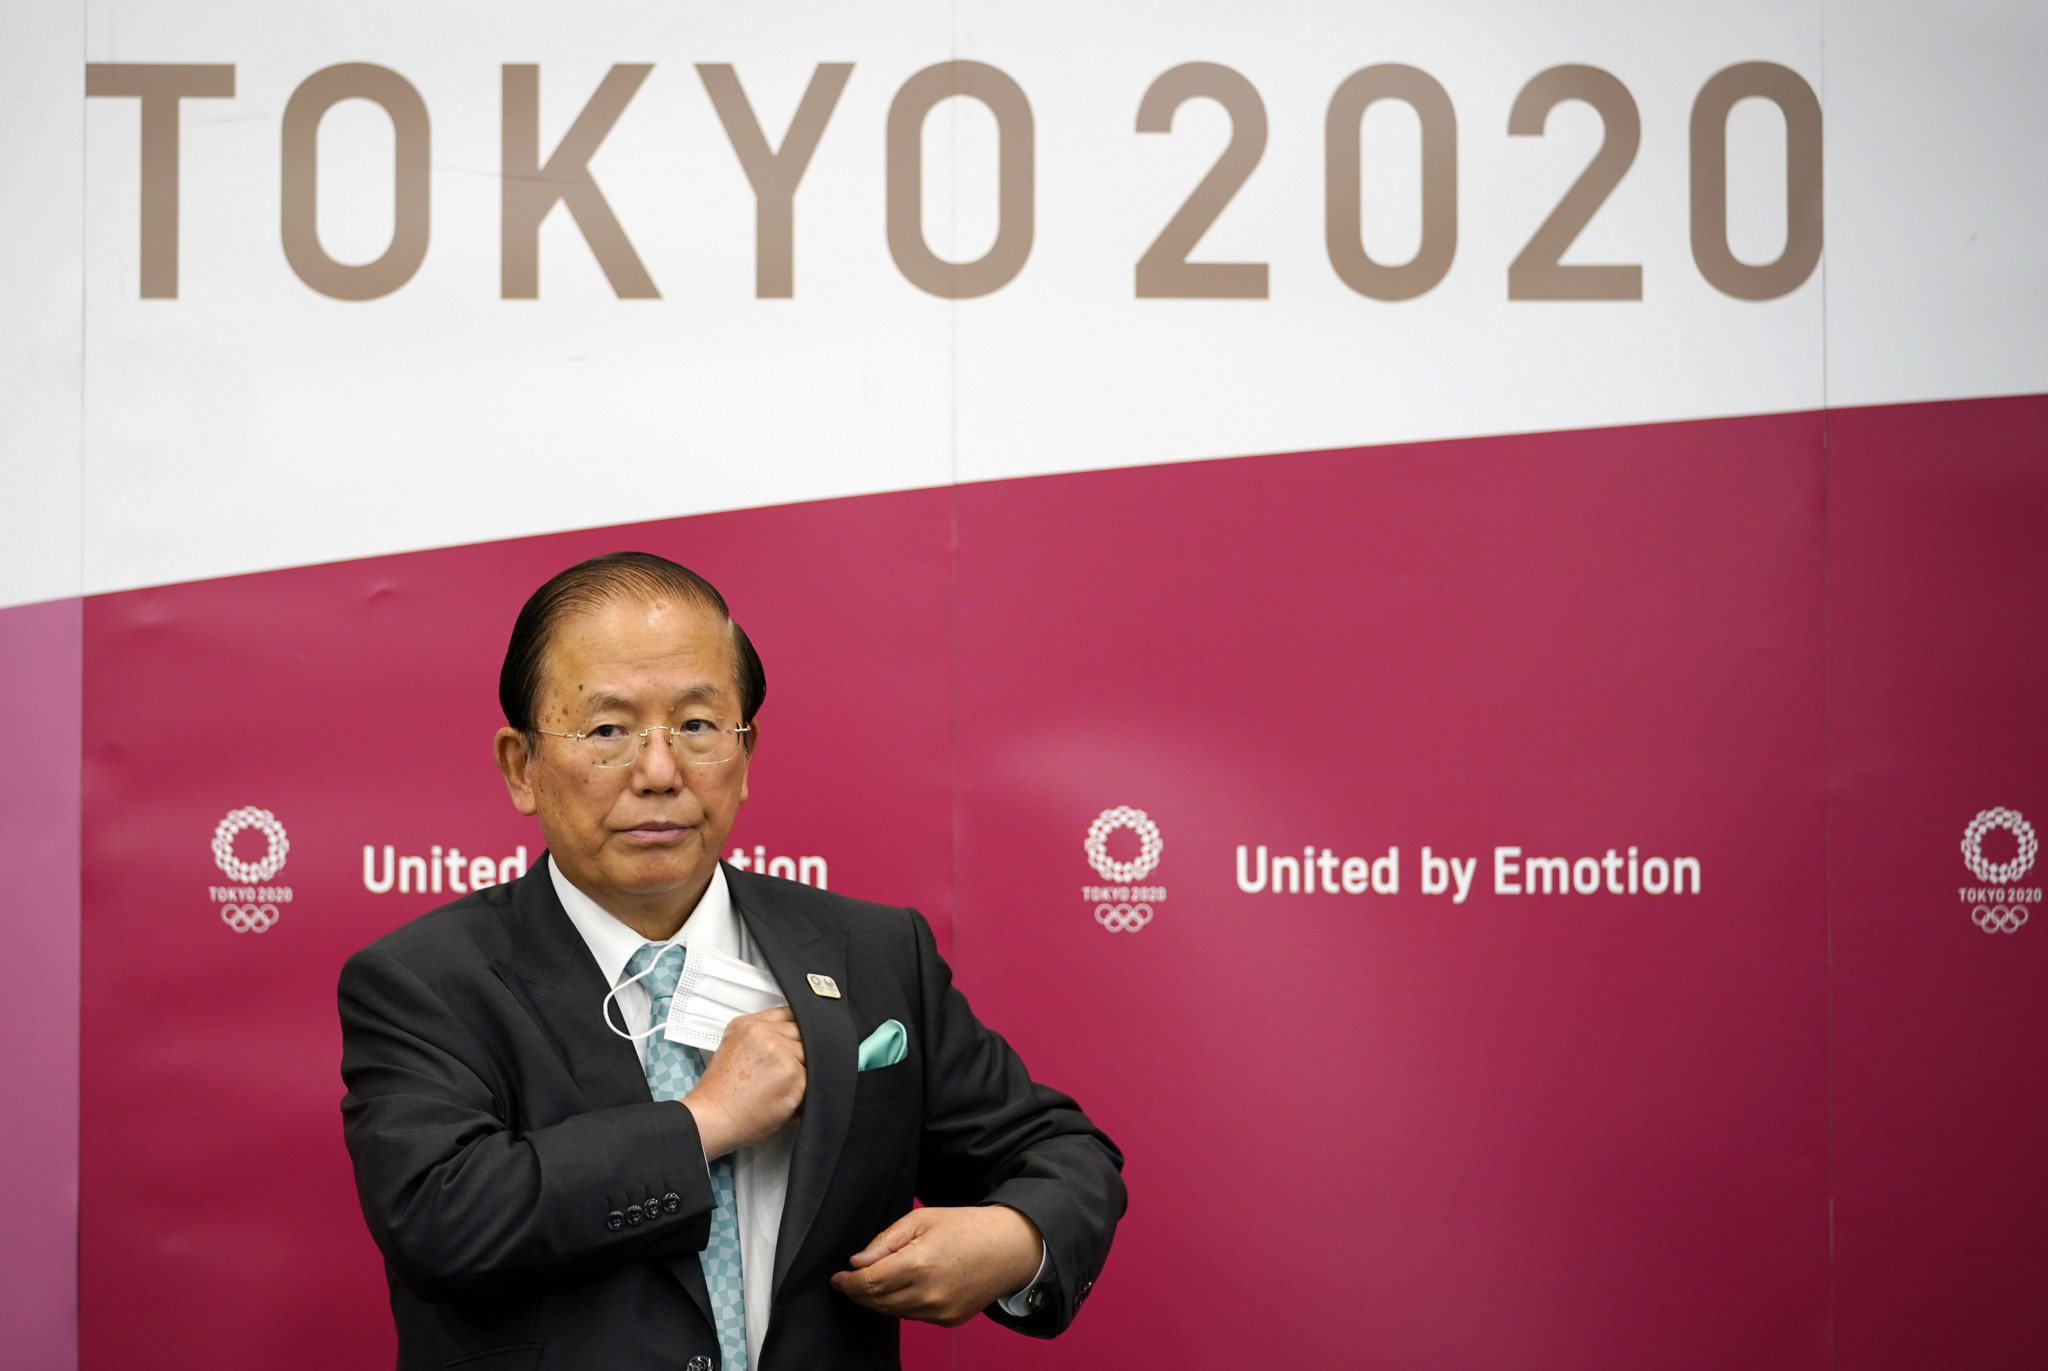 """Tokyo 2020 chief executive Toshiro Muto has said the rescheduled Olympics will be a """"simplified Games"""" ©Getty Images"""